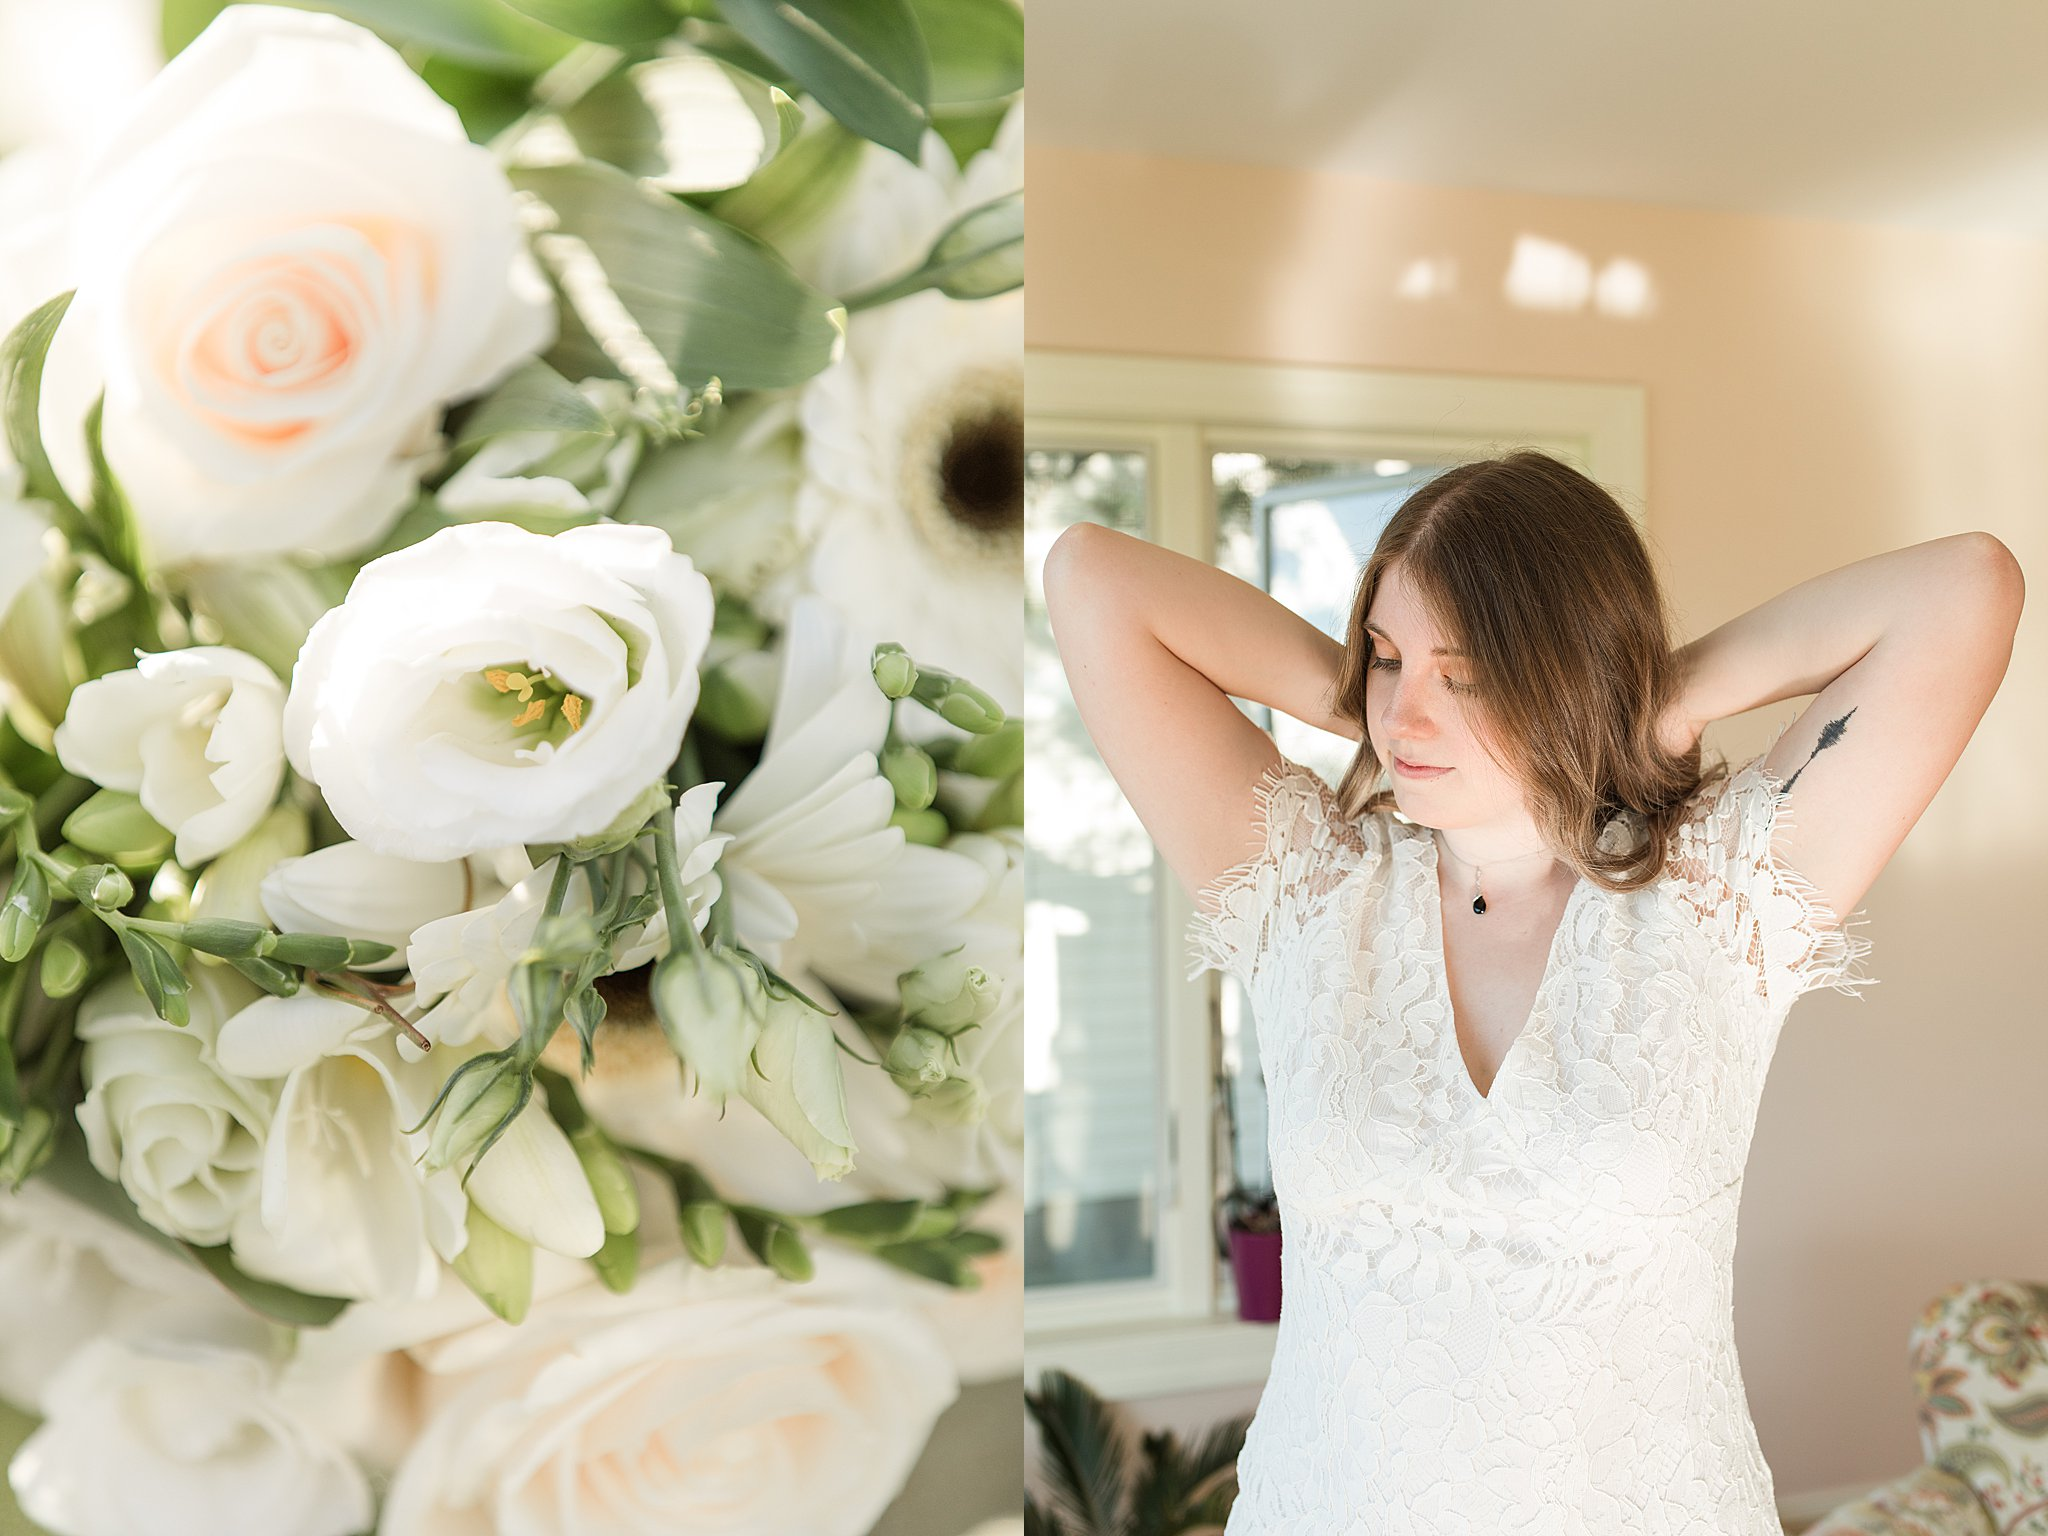 Meagan + Andrew's Lakeside Mini Wedding